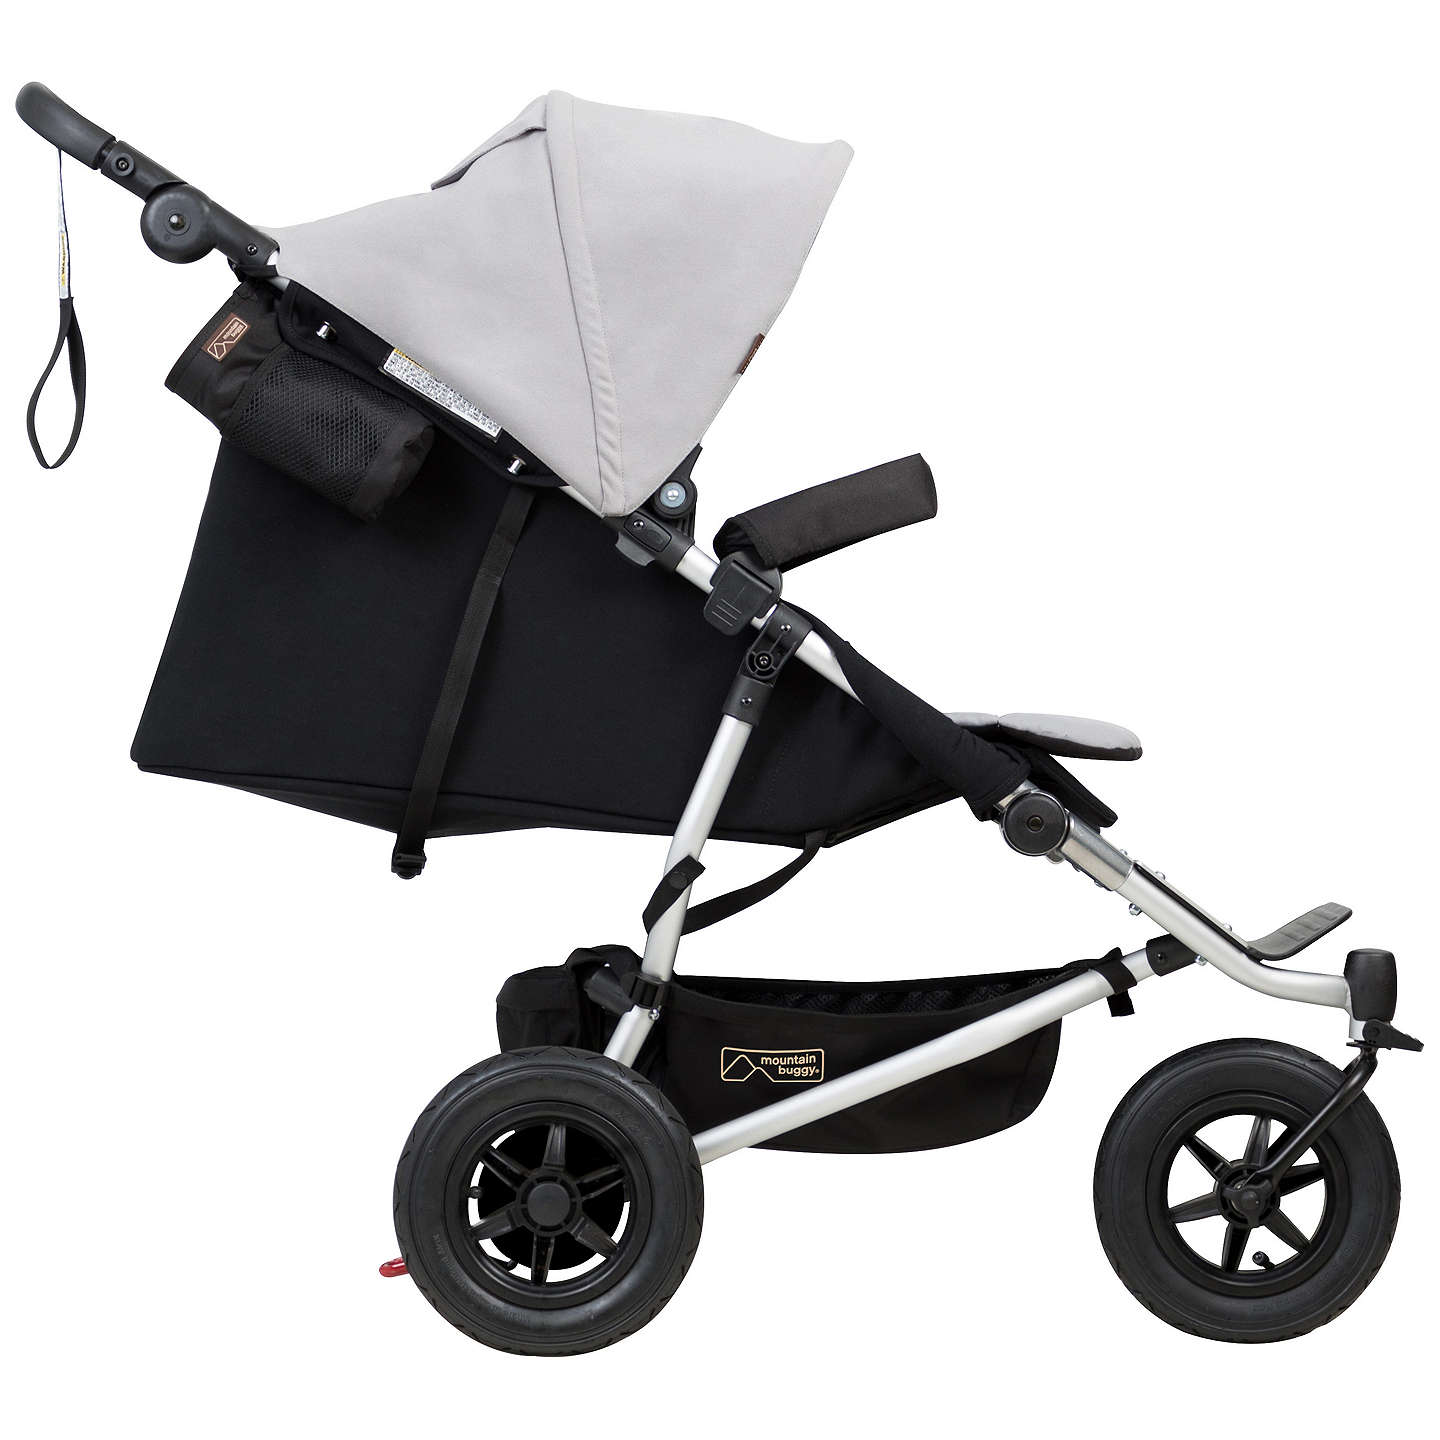 BuyMountain Buggy Duet V3 Pushchair, Silver Online at johnlewis.com